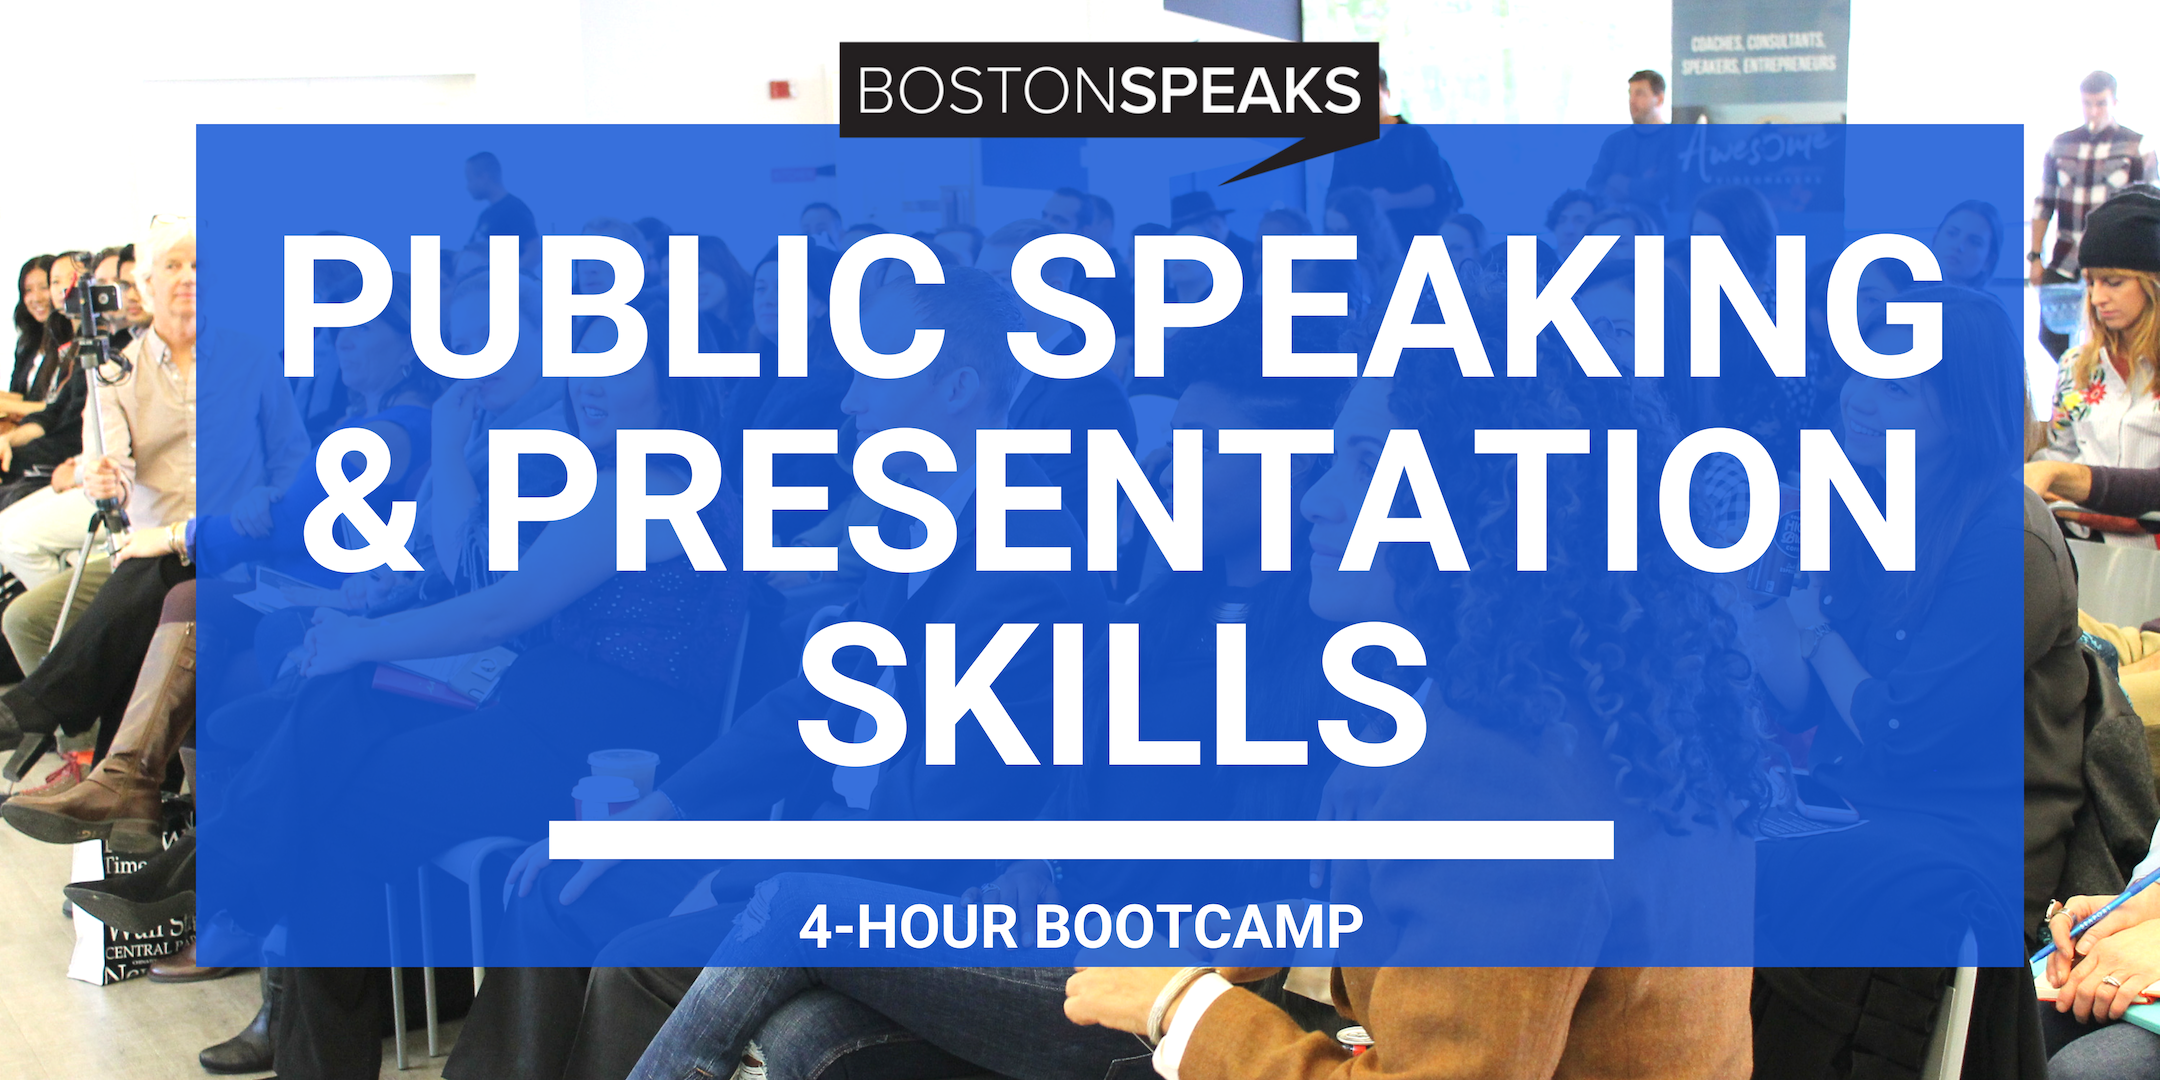 Make Public Speaking Scared Of You! - AN ACTION-PACKED PROGRAM THAT WILL HELP YOU BECOME A MORE CONFIDENT, ENGAGING AND POLISHED PUBLIC SPEAKER. (4-HOUR BOOTCAMP)